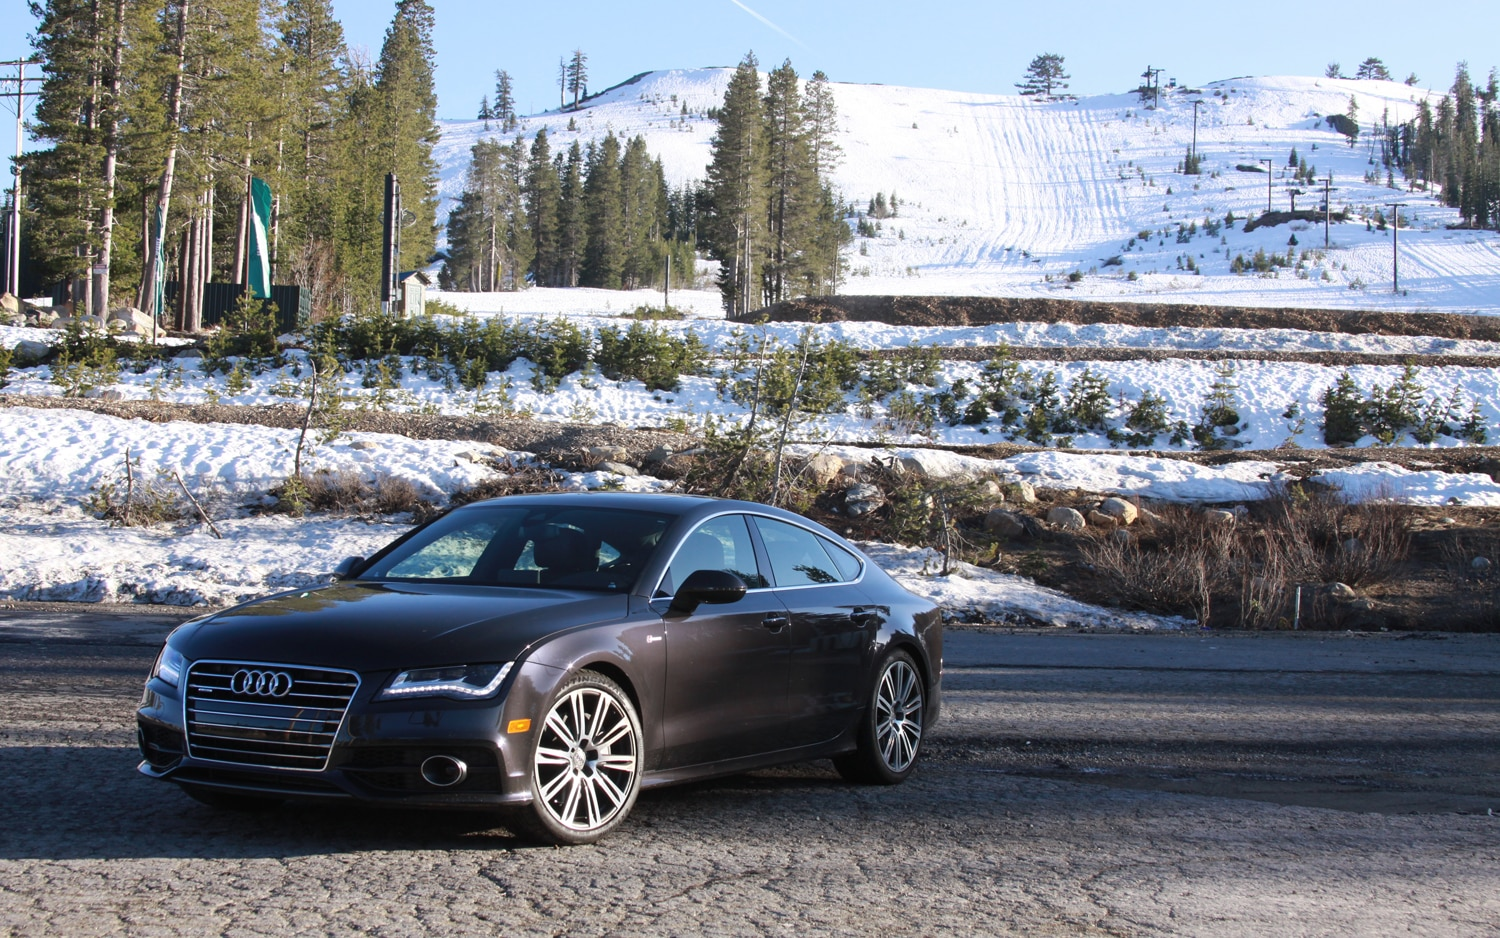 2012 Audi A7 - Questioning The Big Wheels - Automobile Magazine  Audi A S on lexus ls 22s, cadillac dts 22s, range rover 22s, cadillac sts 22s, chrysler 300 22s, pontiac grand prix 22s, dodge journey 22s, chrysler 200 22s, honda accord 22s, hyundai sonata 22s, buick lacrosse 22s, acura tl 22s,